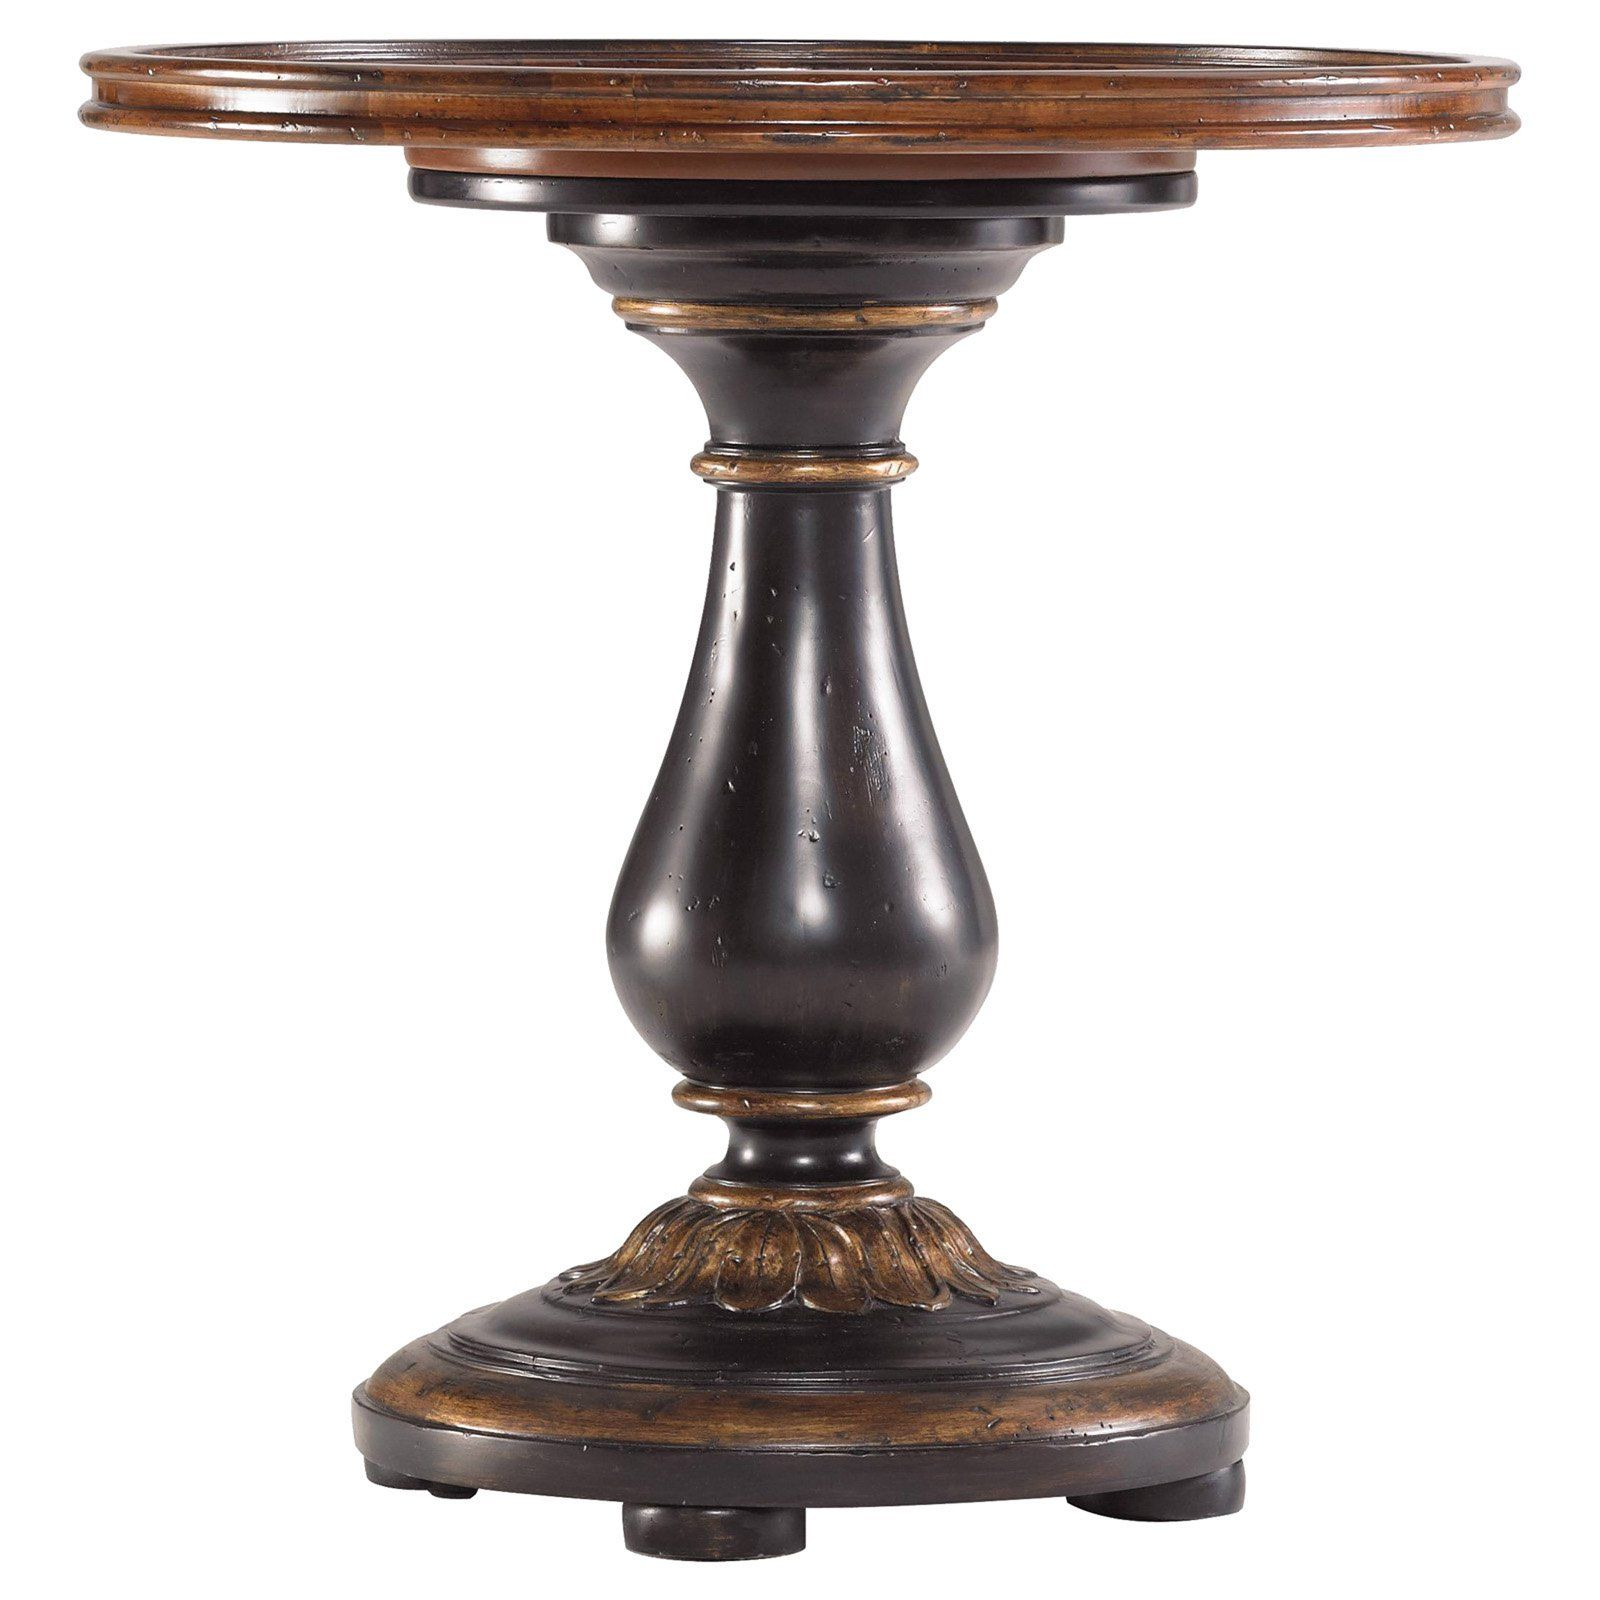 hooker furniture grandover round accent table products antique small tables wine rack cabinet dining room storage modern lamp poolside dale tiffany wall art foyer console desk